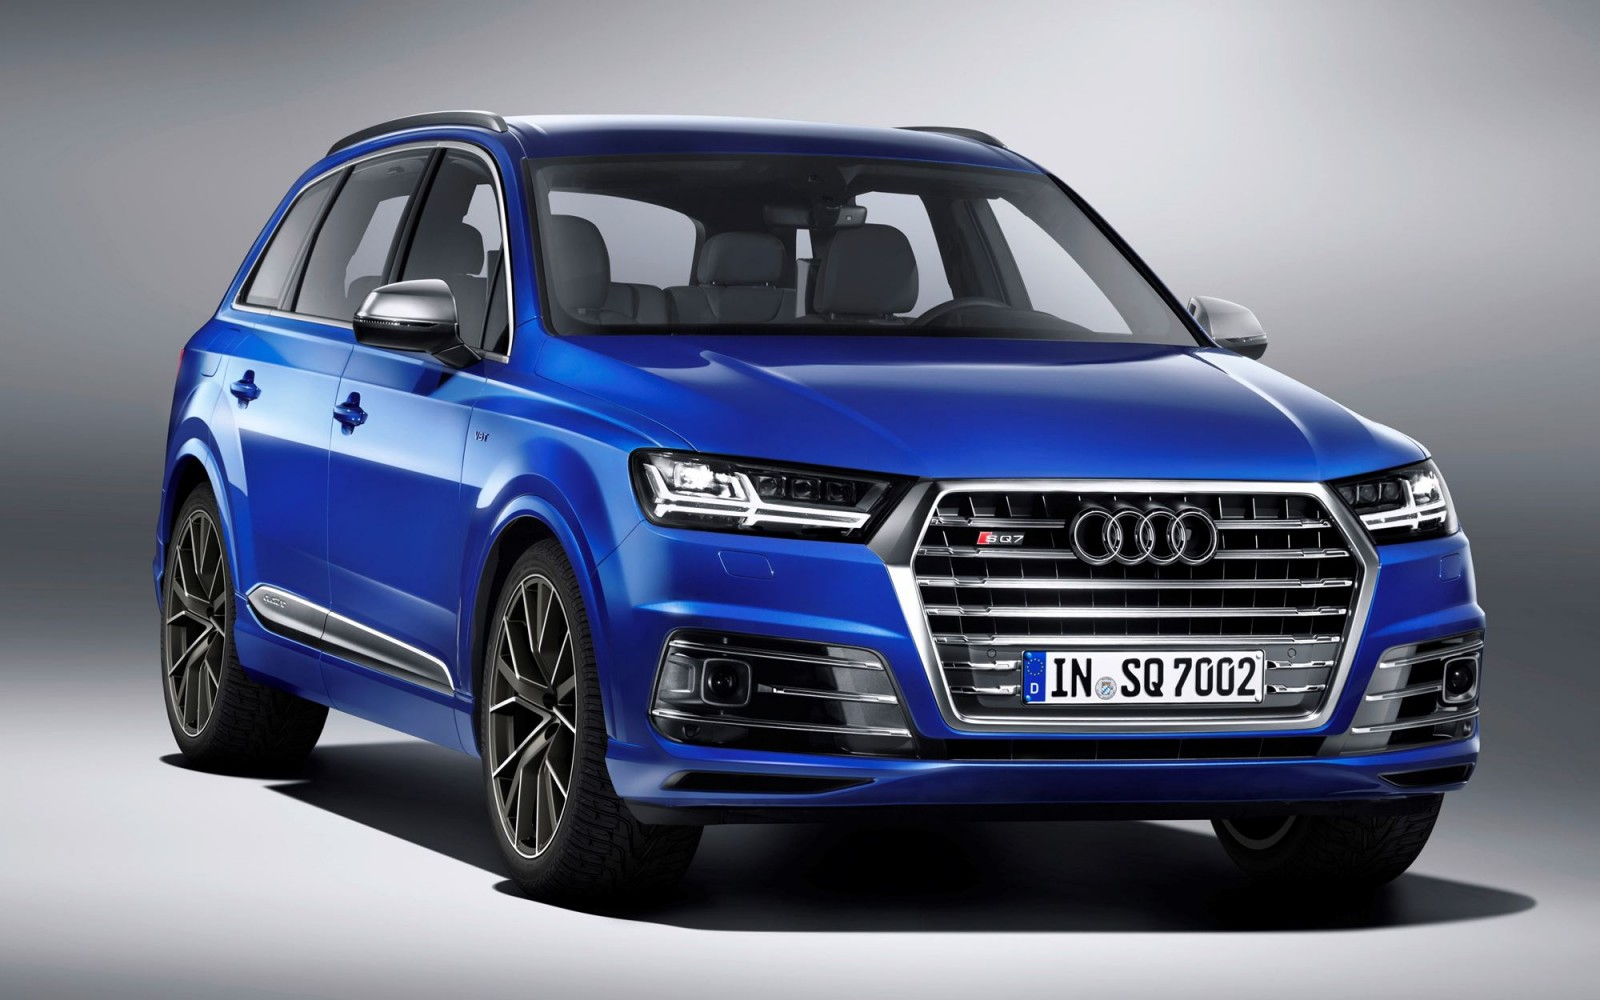 2017 audi sq7 tdi triple turbo diesel v8 is ultimate tax on society car revs. Black Bedroom Furniture Sets. Home Design Ideas